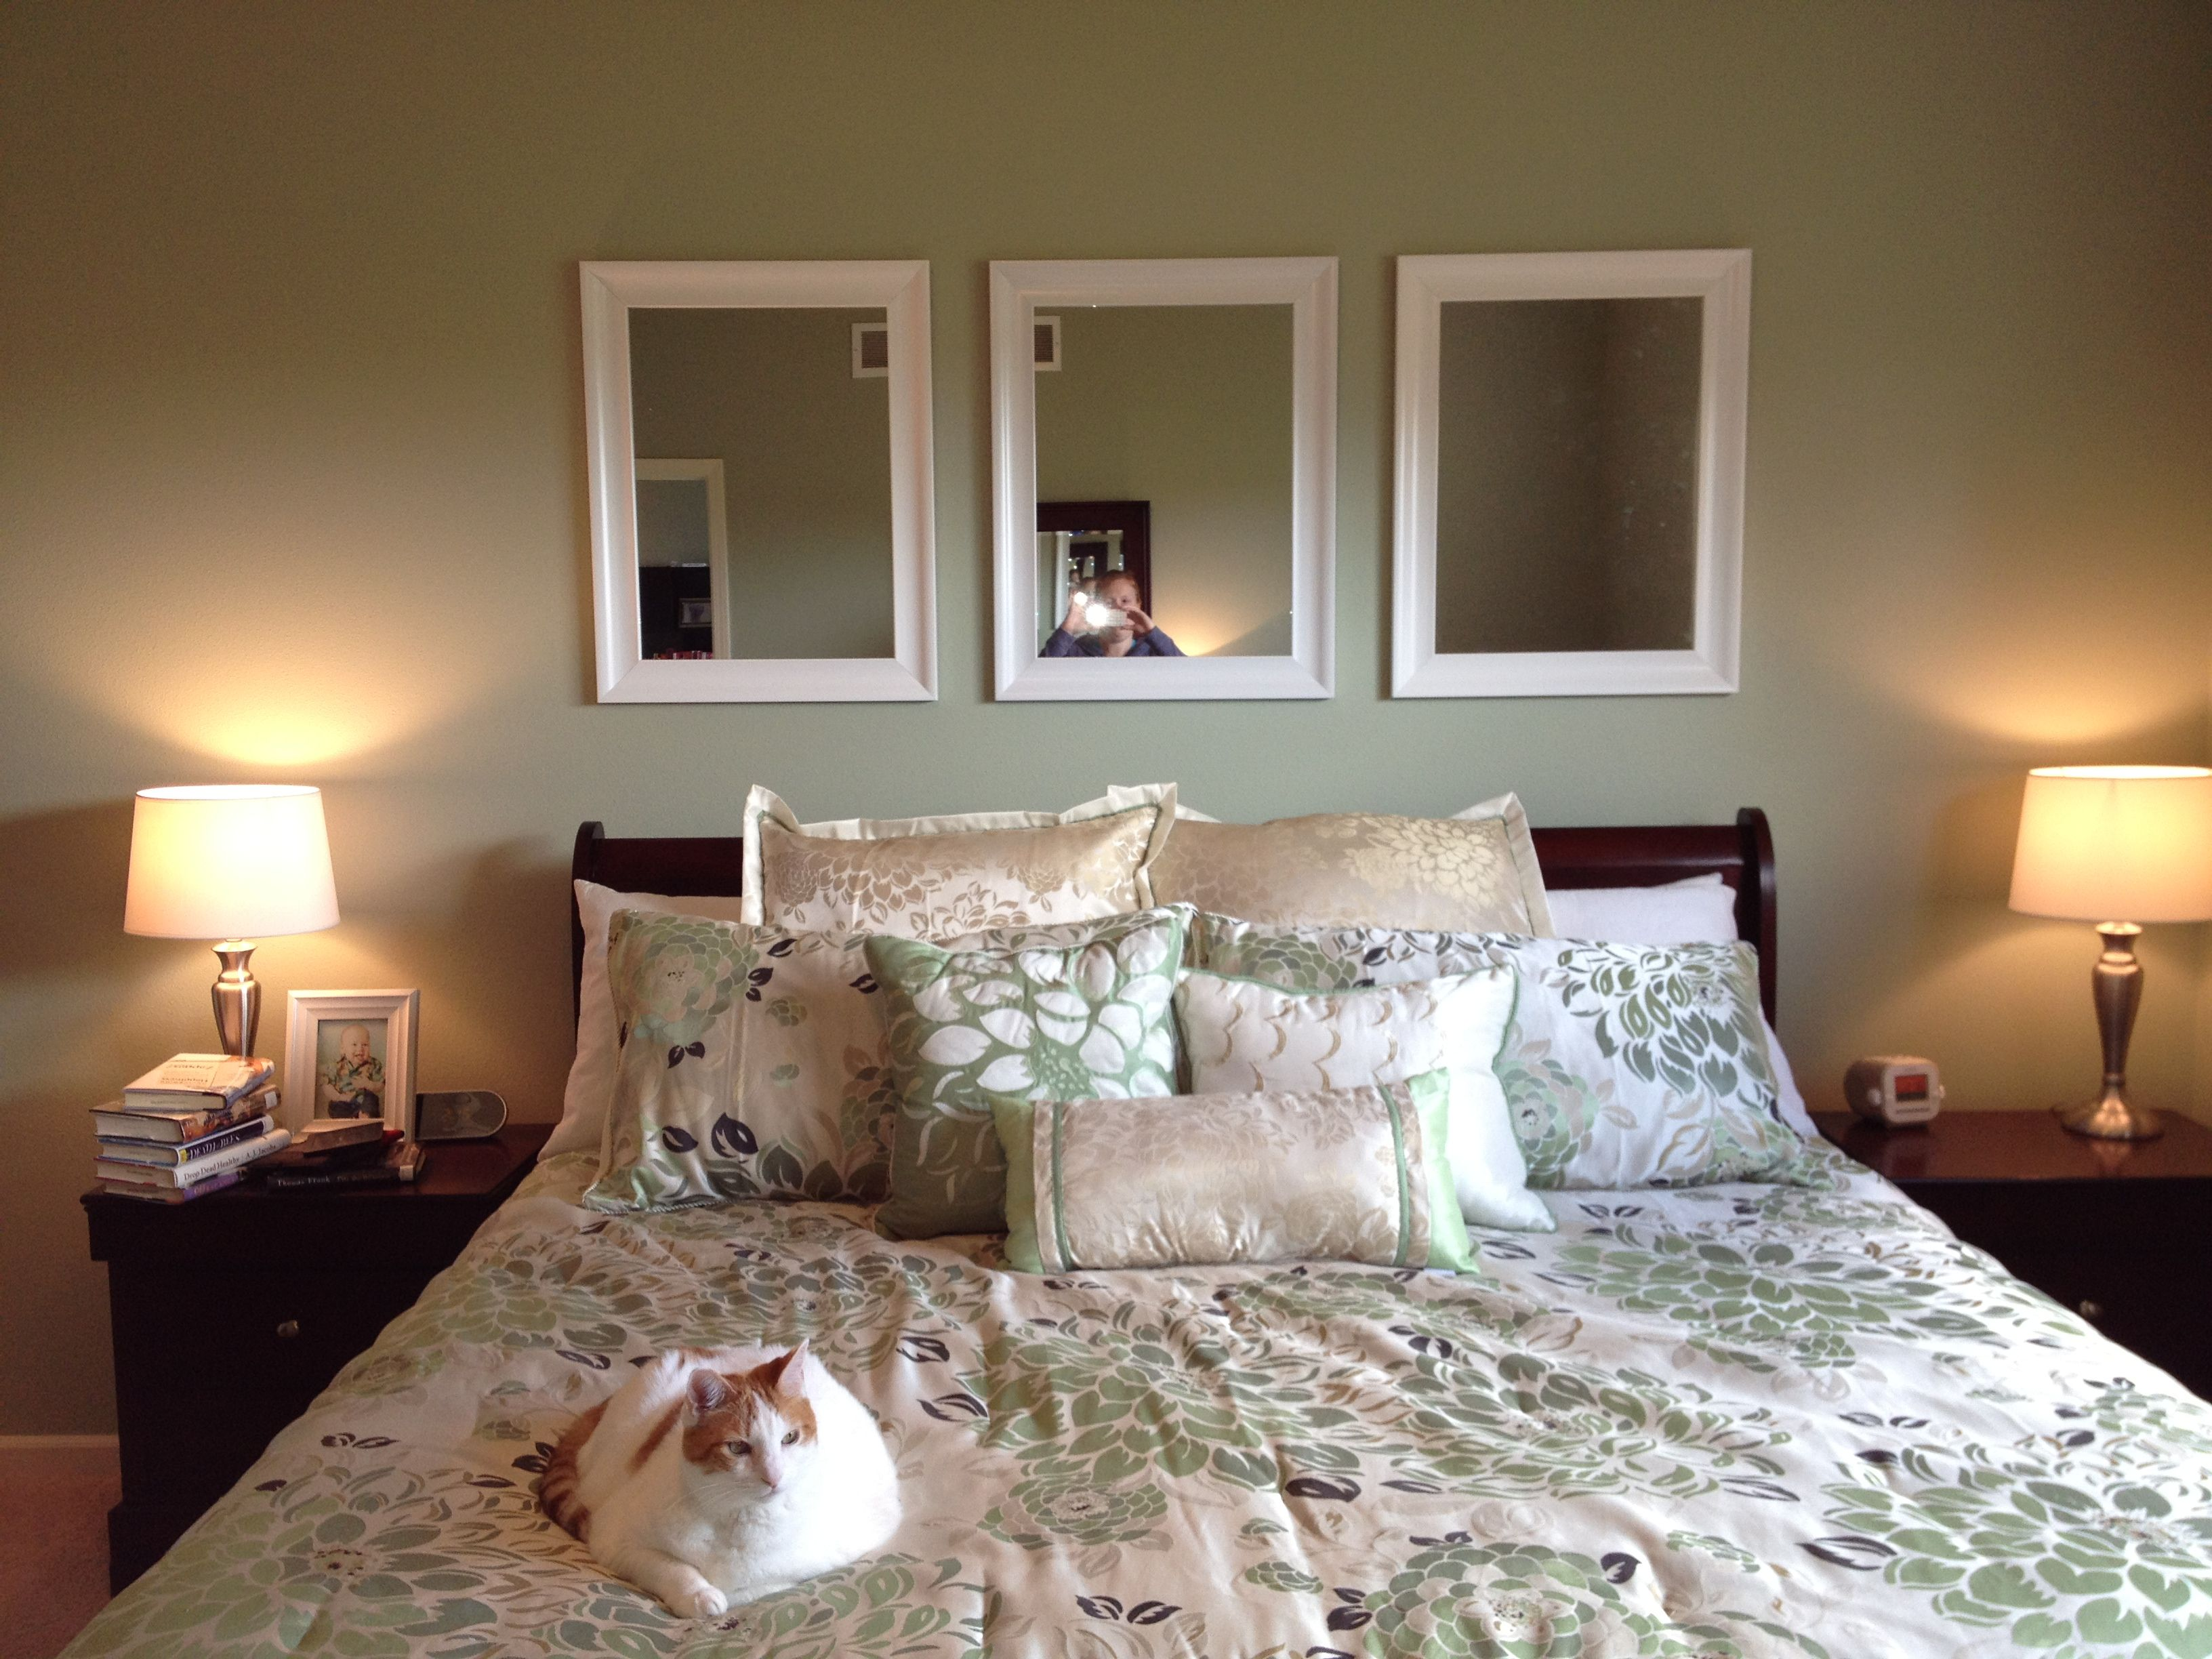 Sherwin Williams Softened Green SW 6177 Green is a ridiculously